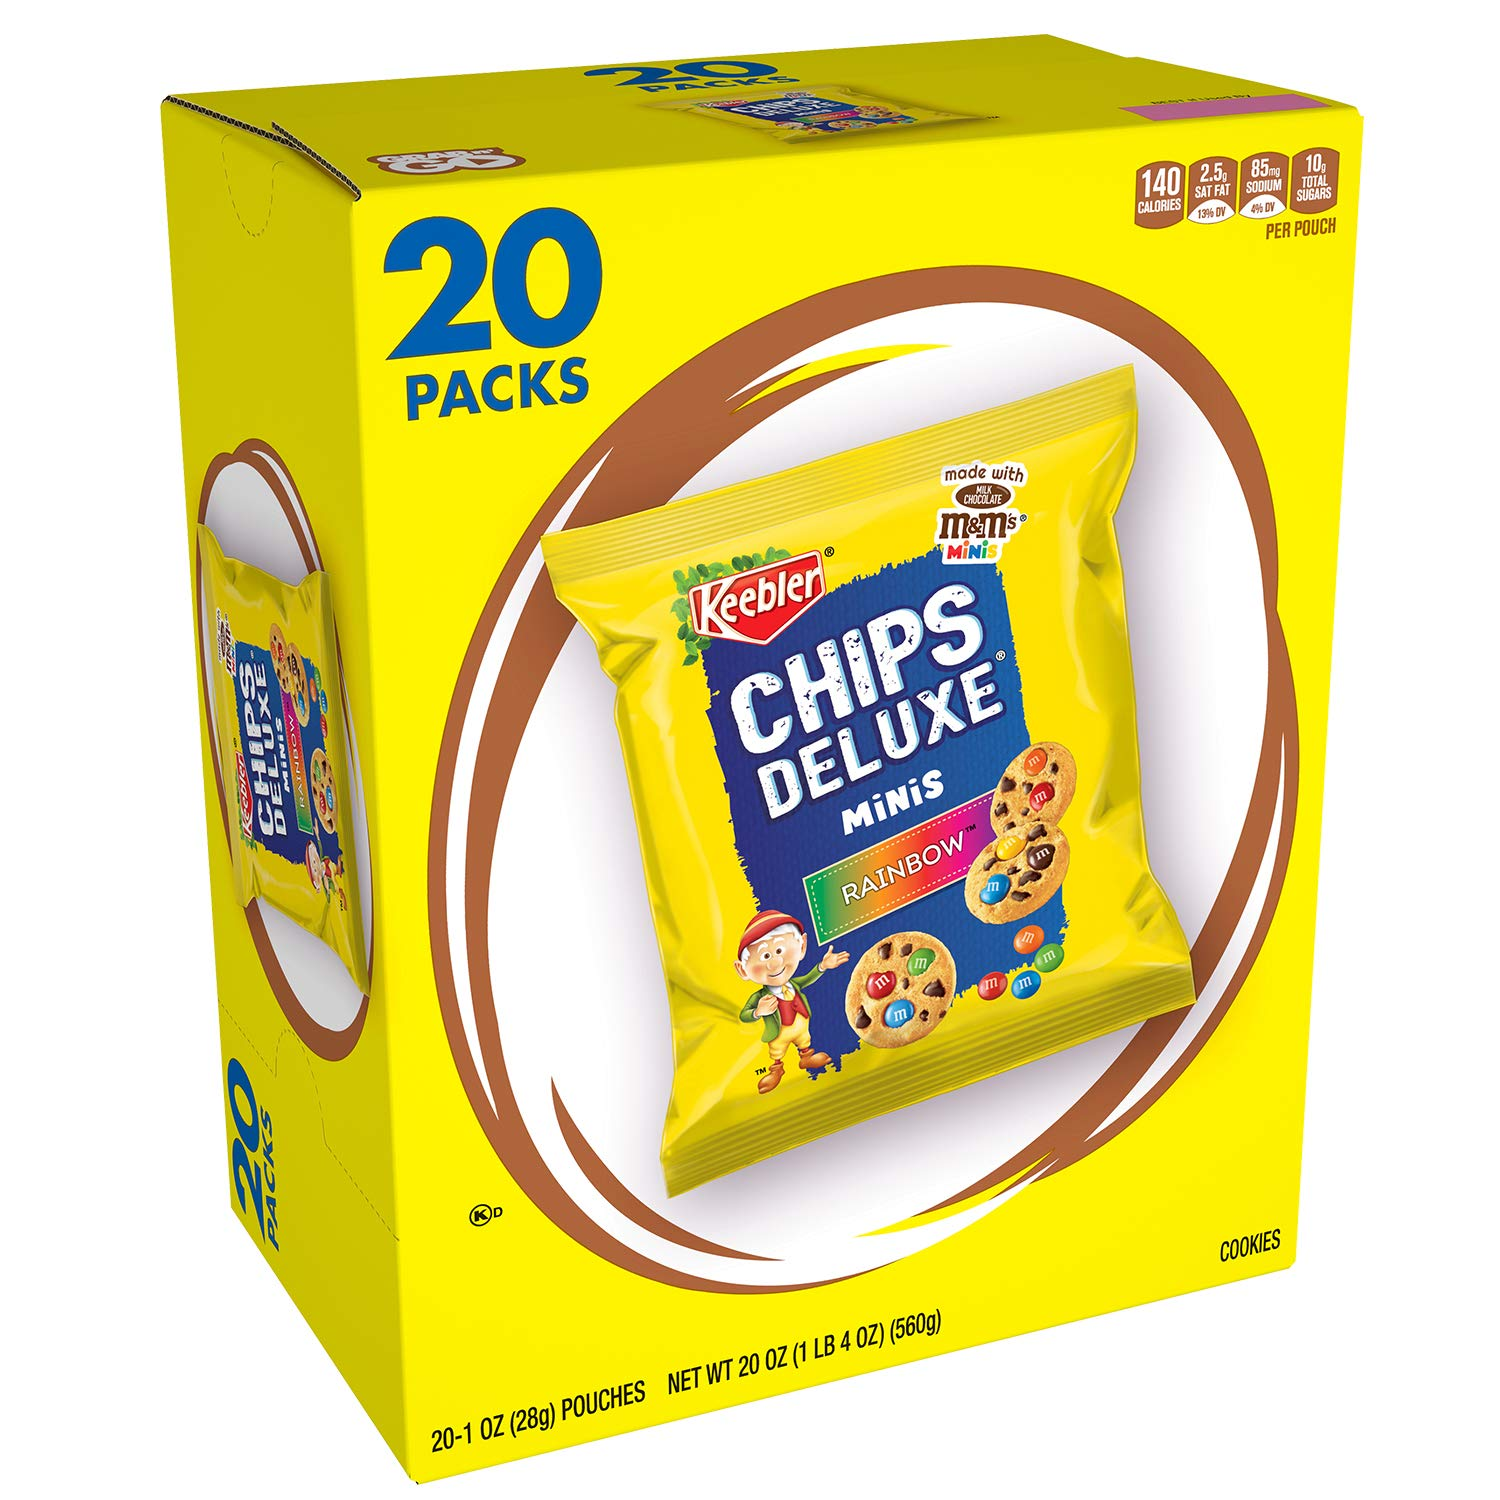 Keebler Chips Deluxe Minis Cookies, Rainbow with M&M's Mini Candies, Chocolate, 20 Ounce